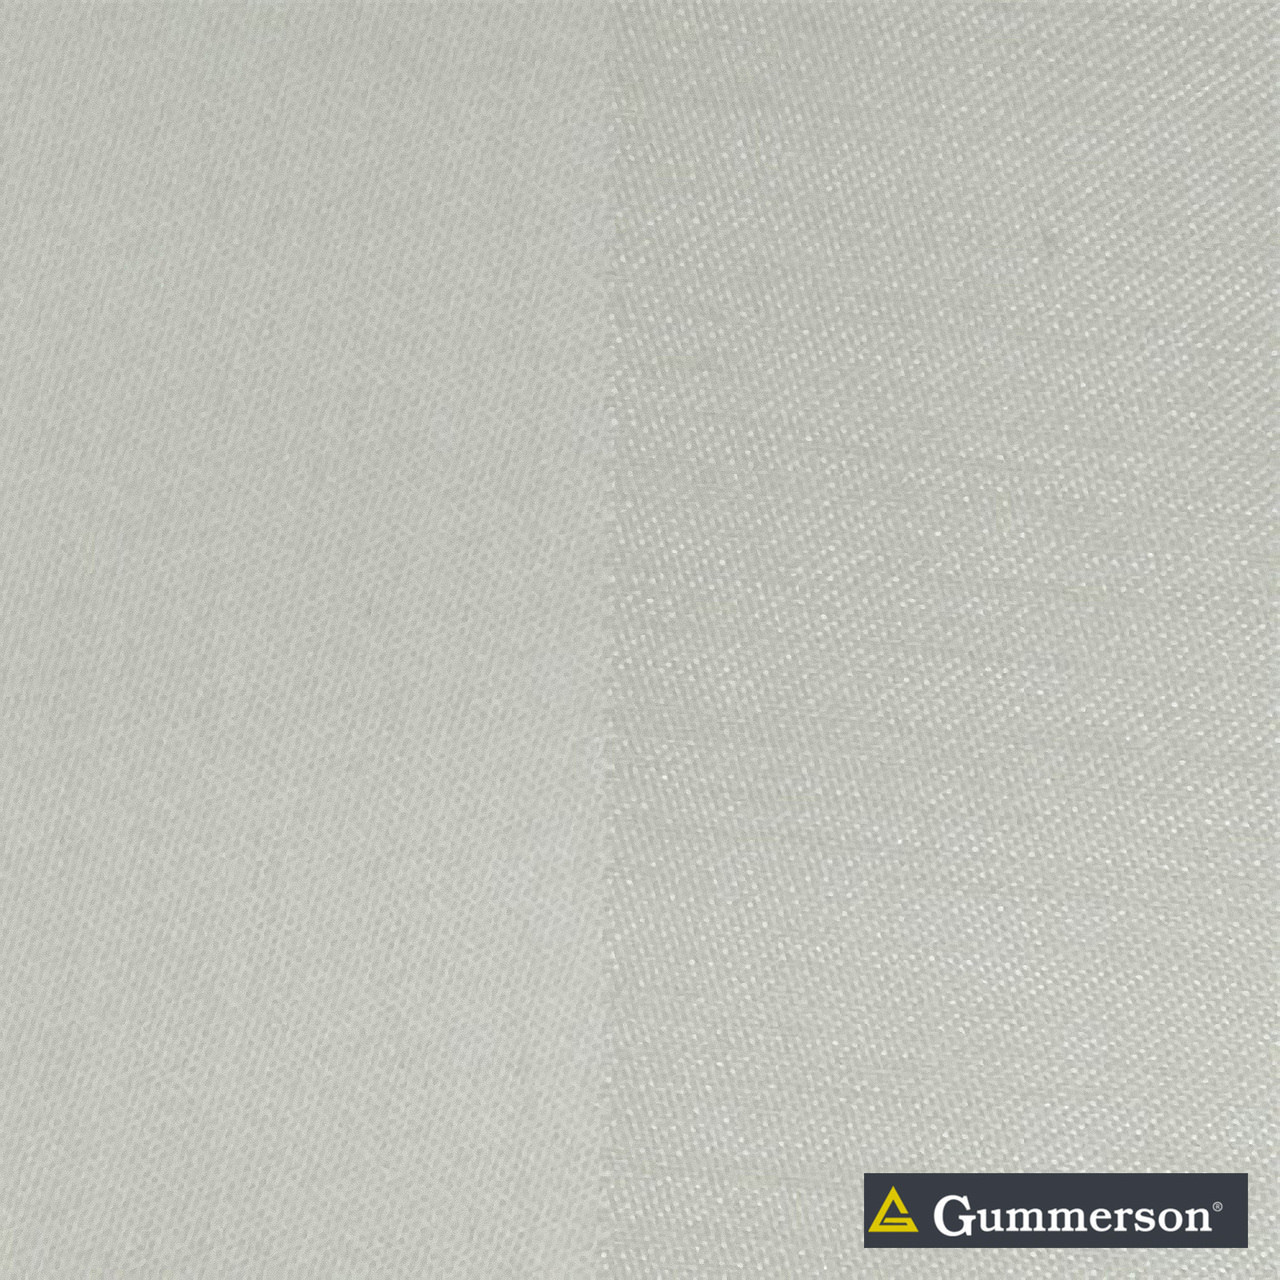 Gummerson - Valencia Linen Blockout 150cm  | Curtain Fabric - Beige, Blockout, White, Coated, Contemporary, Modern, Stripe, Synthetic, Traditional, Transitional, Washable